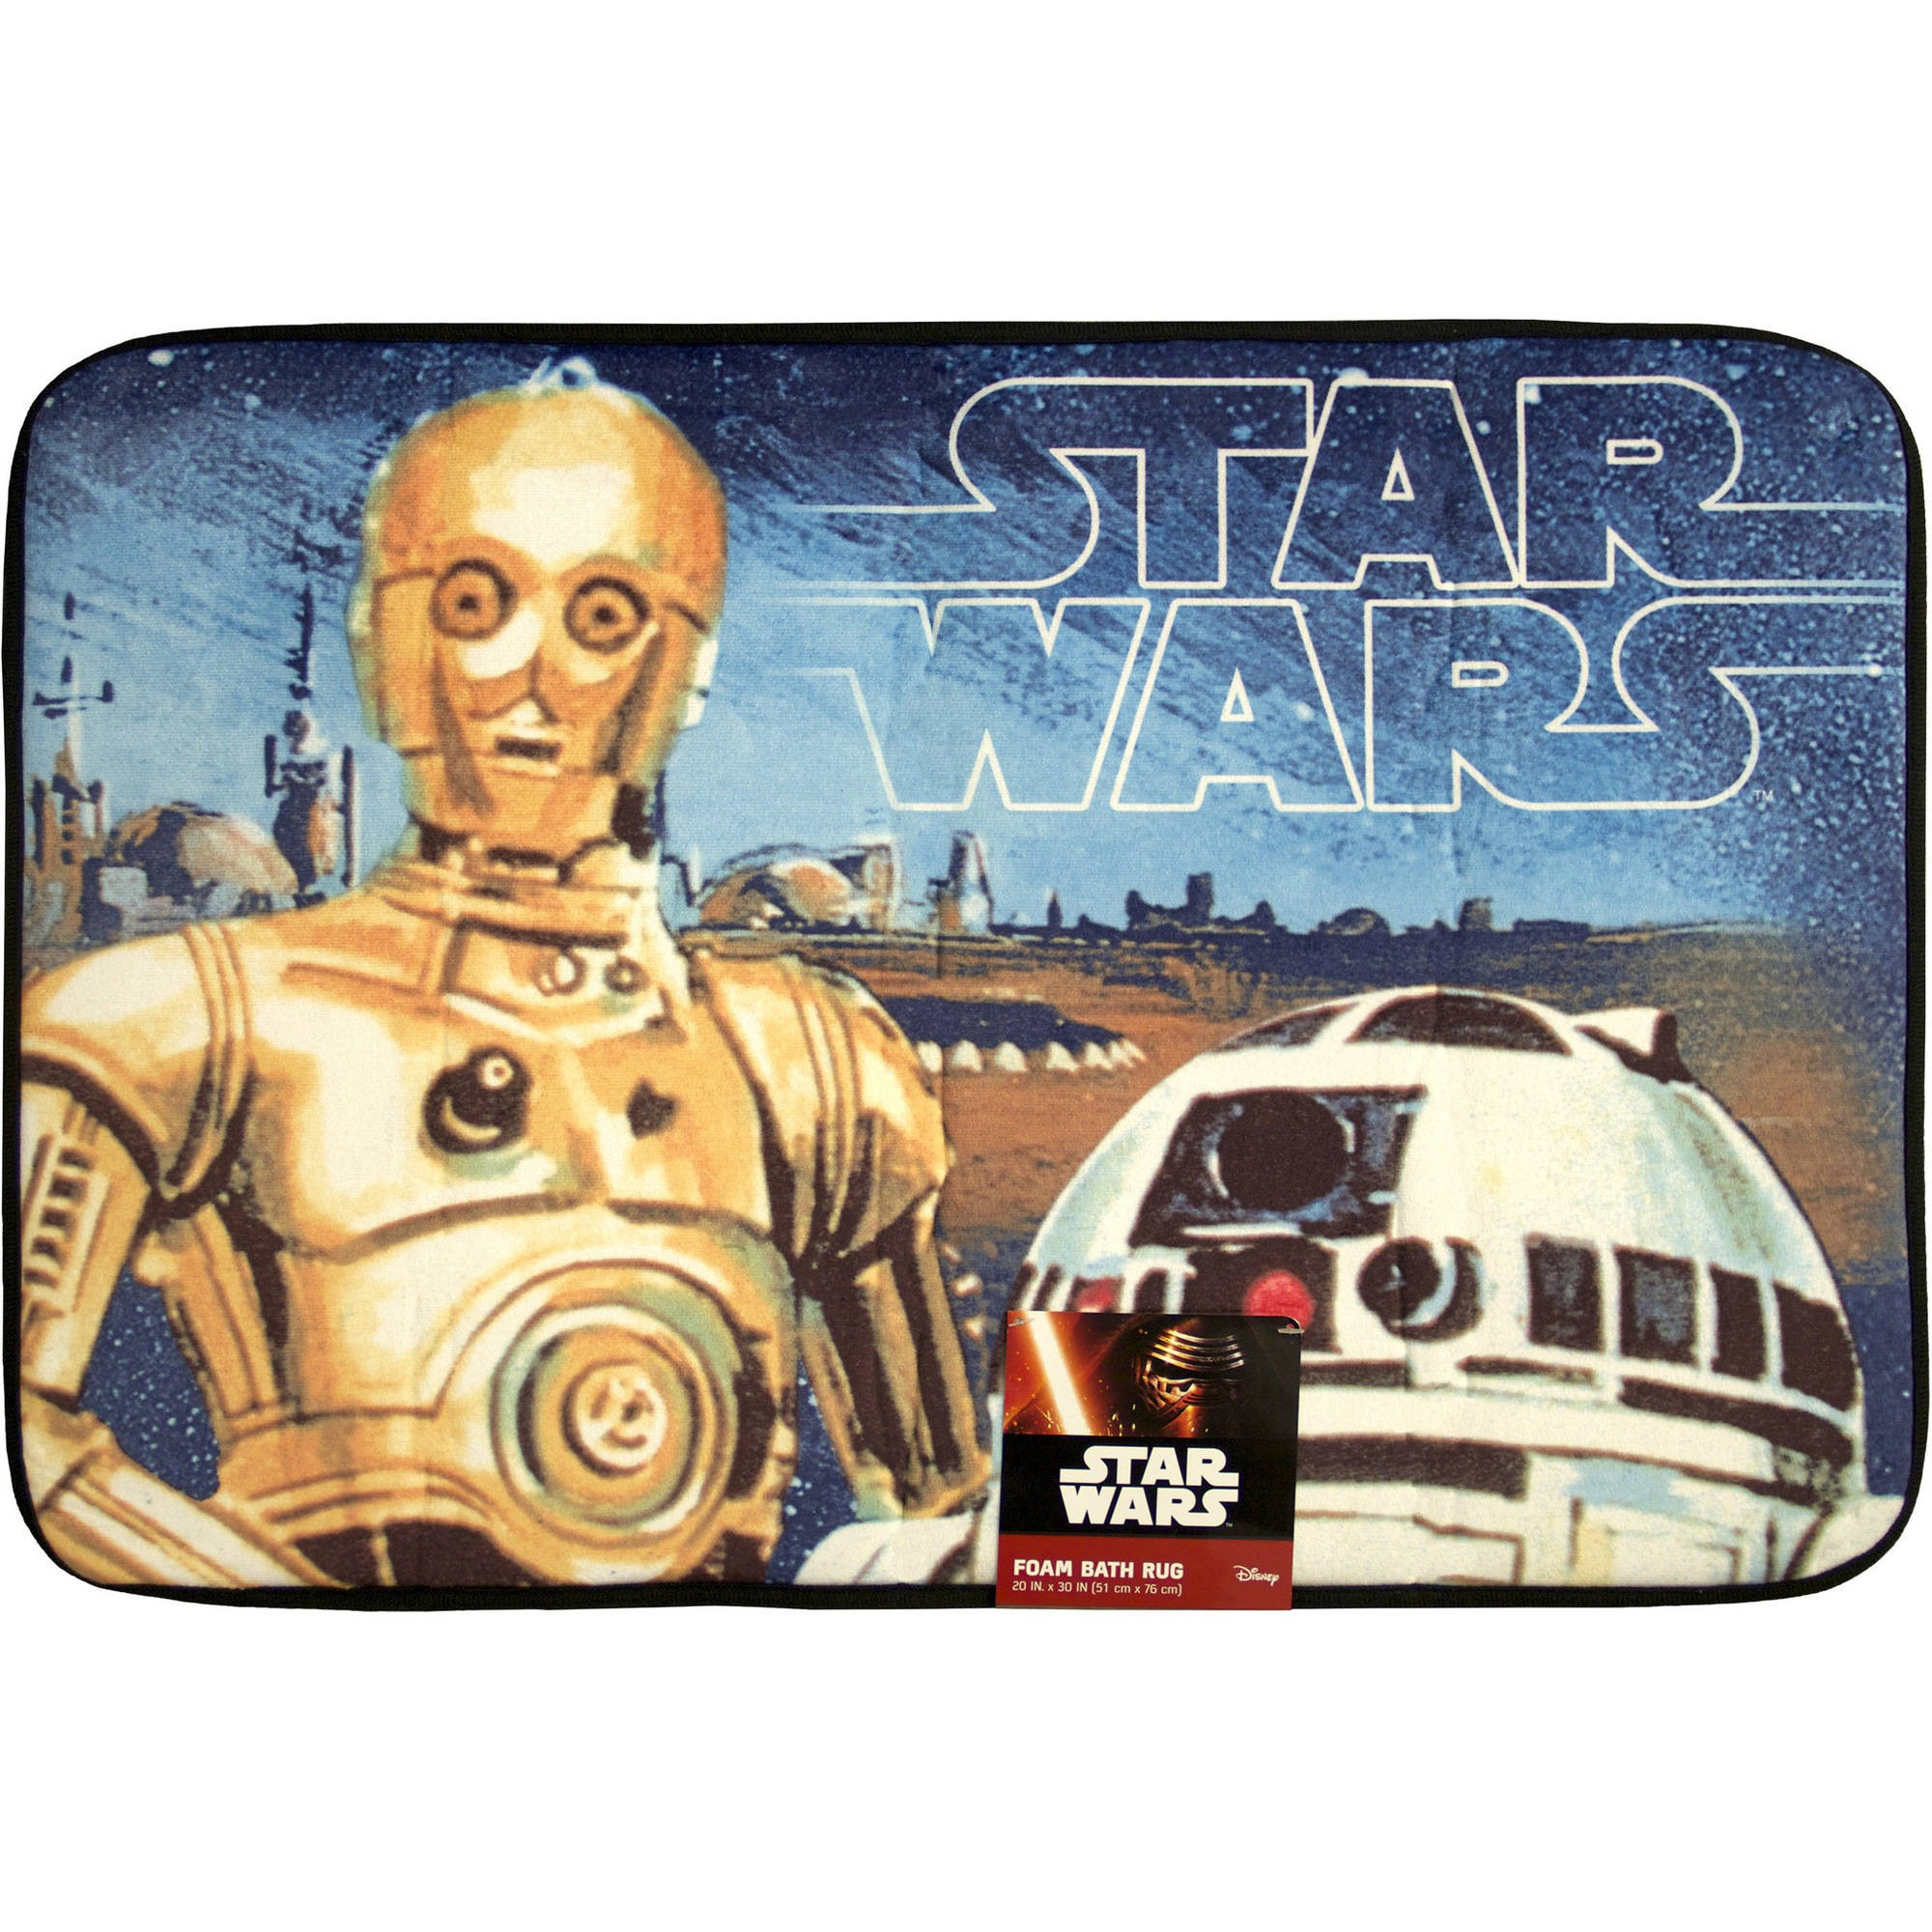 Star Wars Foam Bath Rug, 1 Each